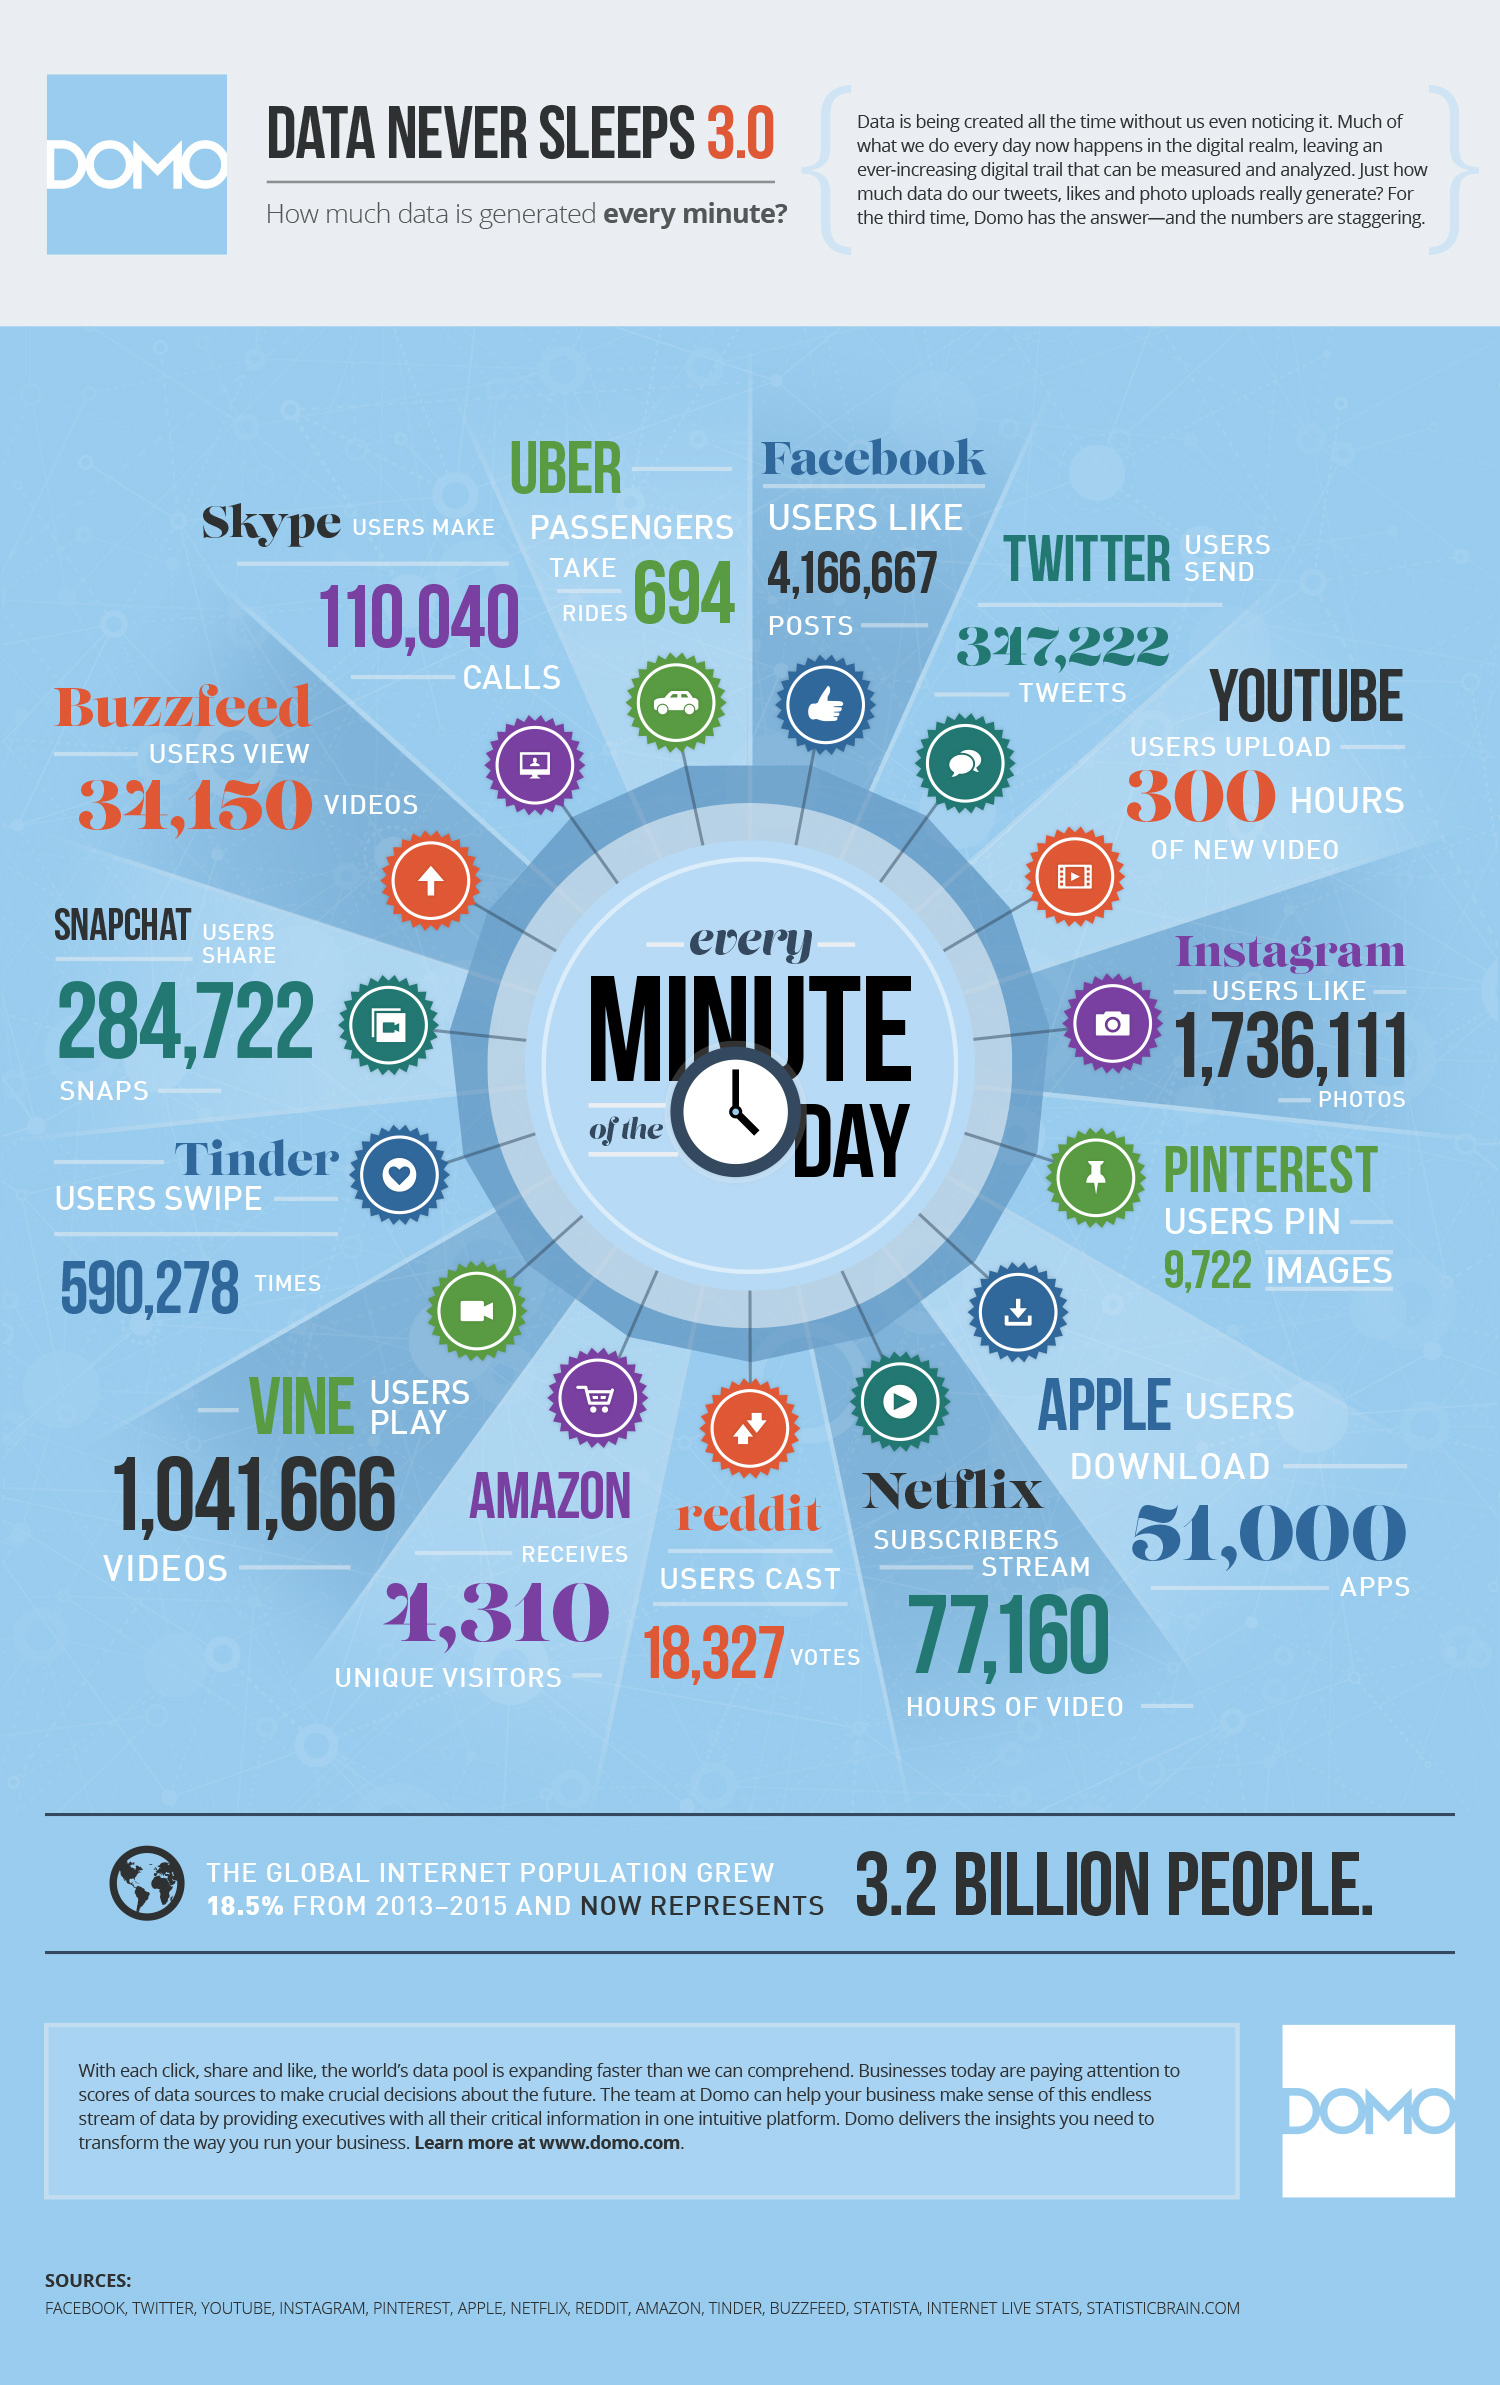 wersm-how-much-data-is-generated-every-minute-infographic